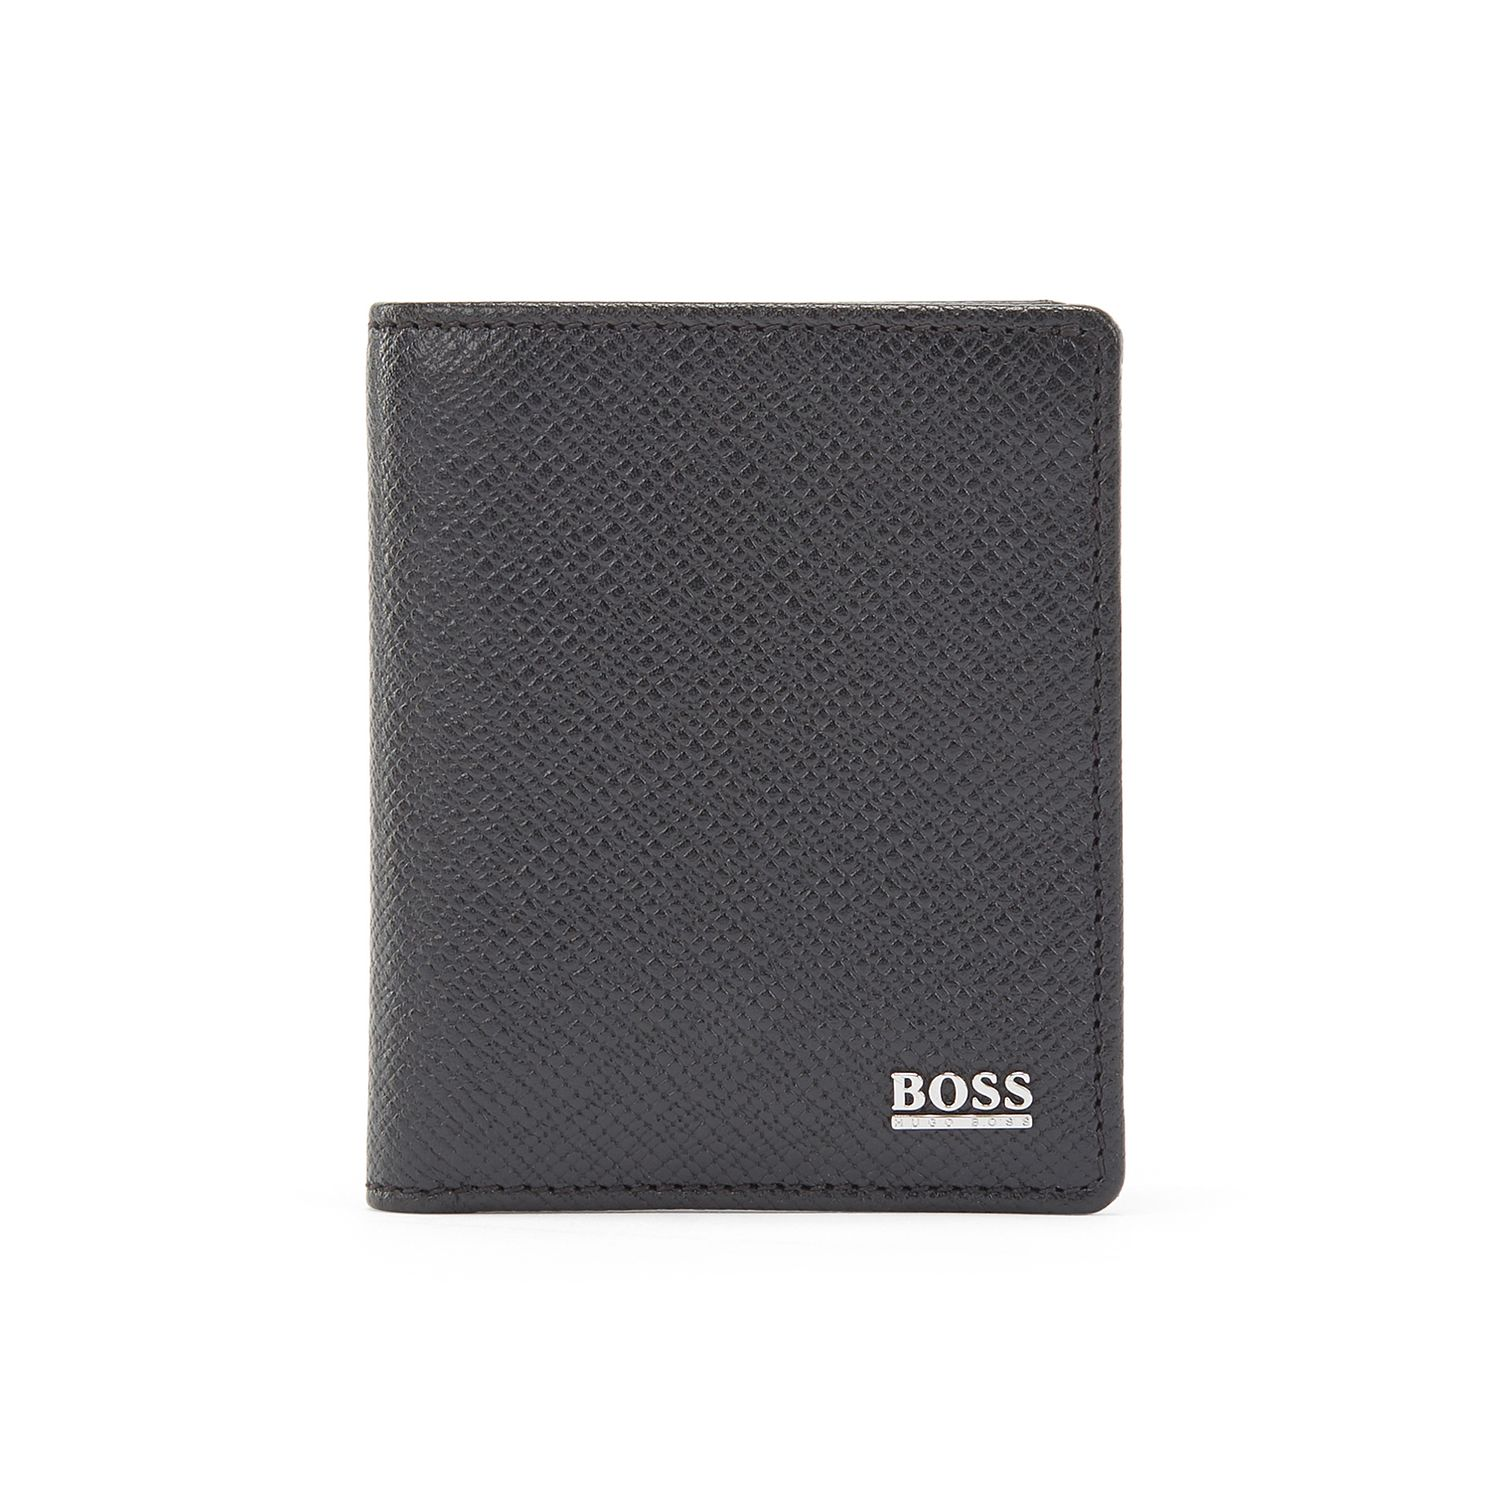 BOSS Signature Collection Men's Black Leather Card Holder - Product number 3627187